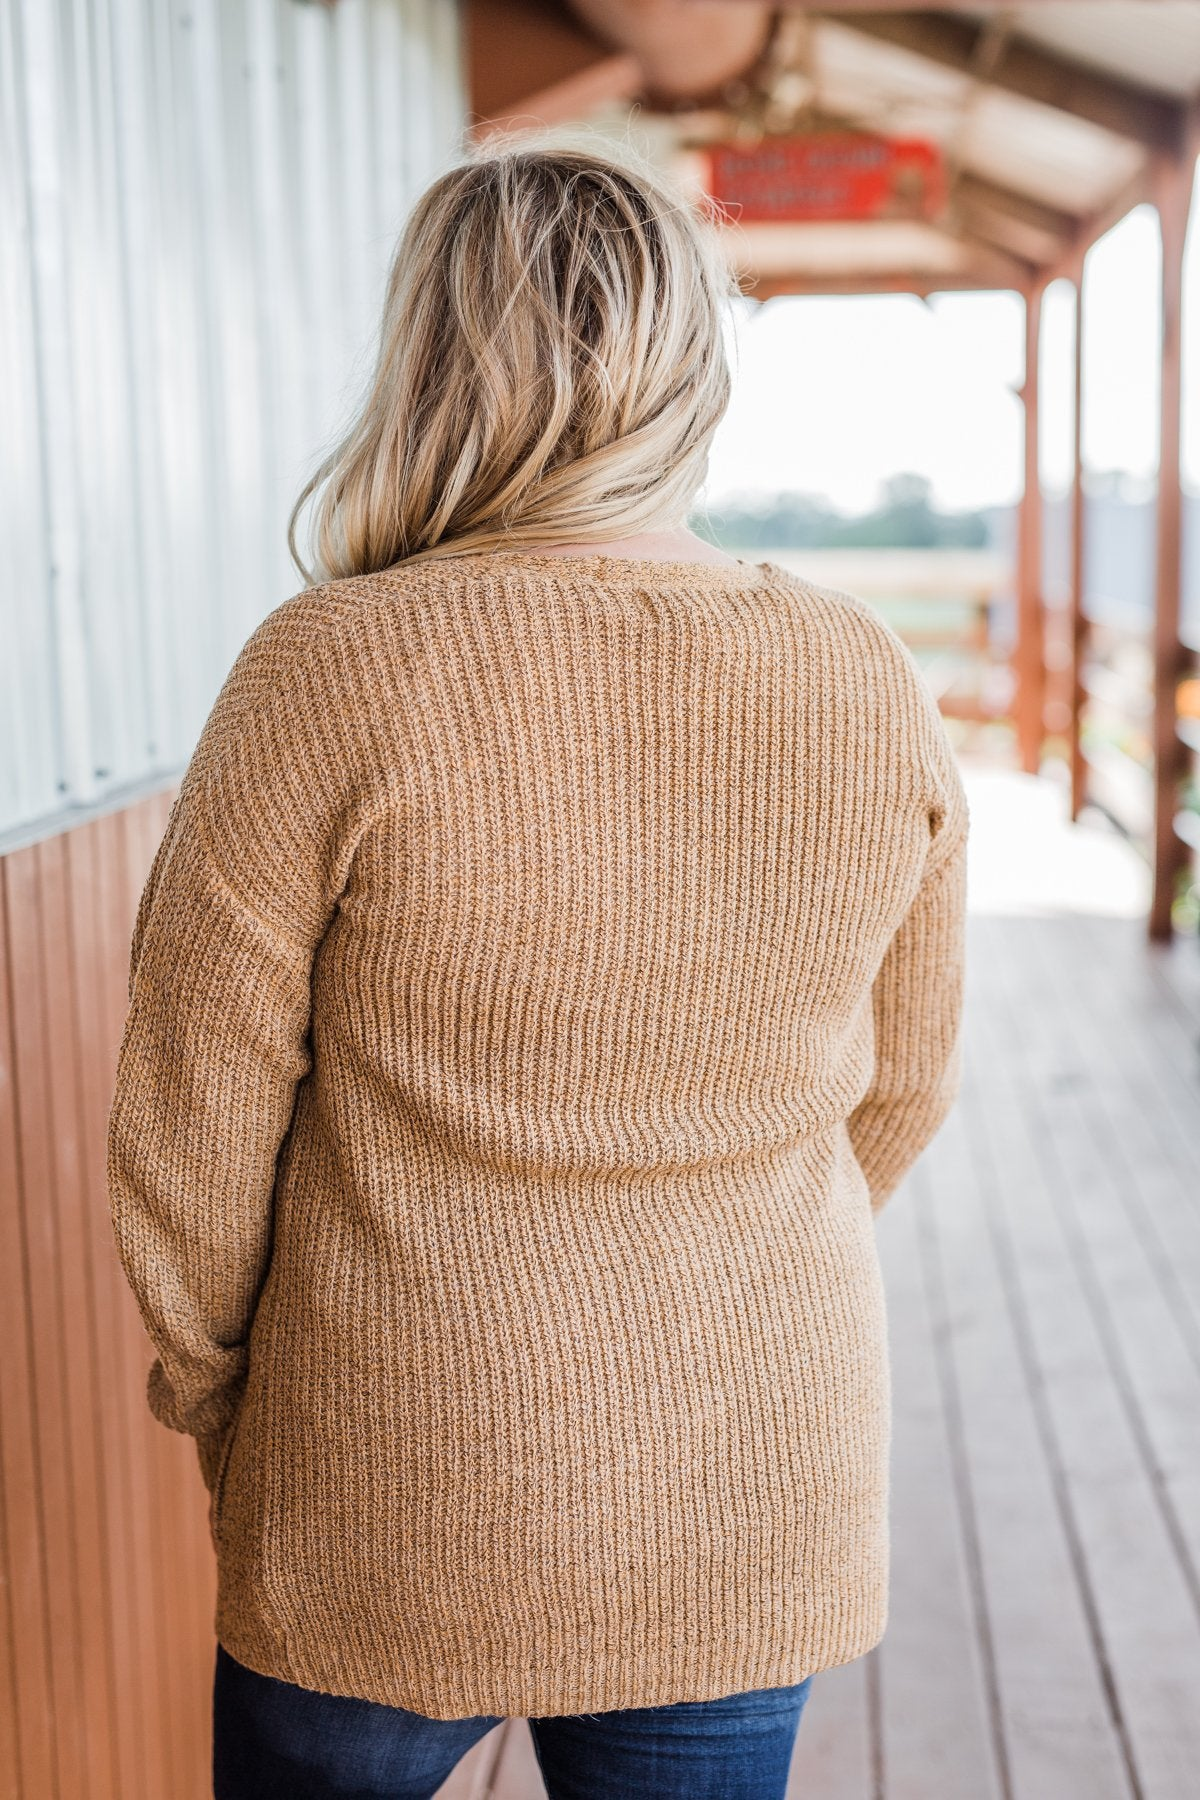 Making Memories Knit Cardigan- Camel